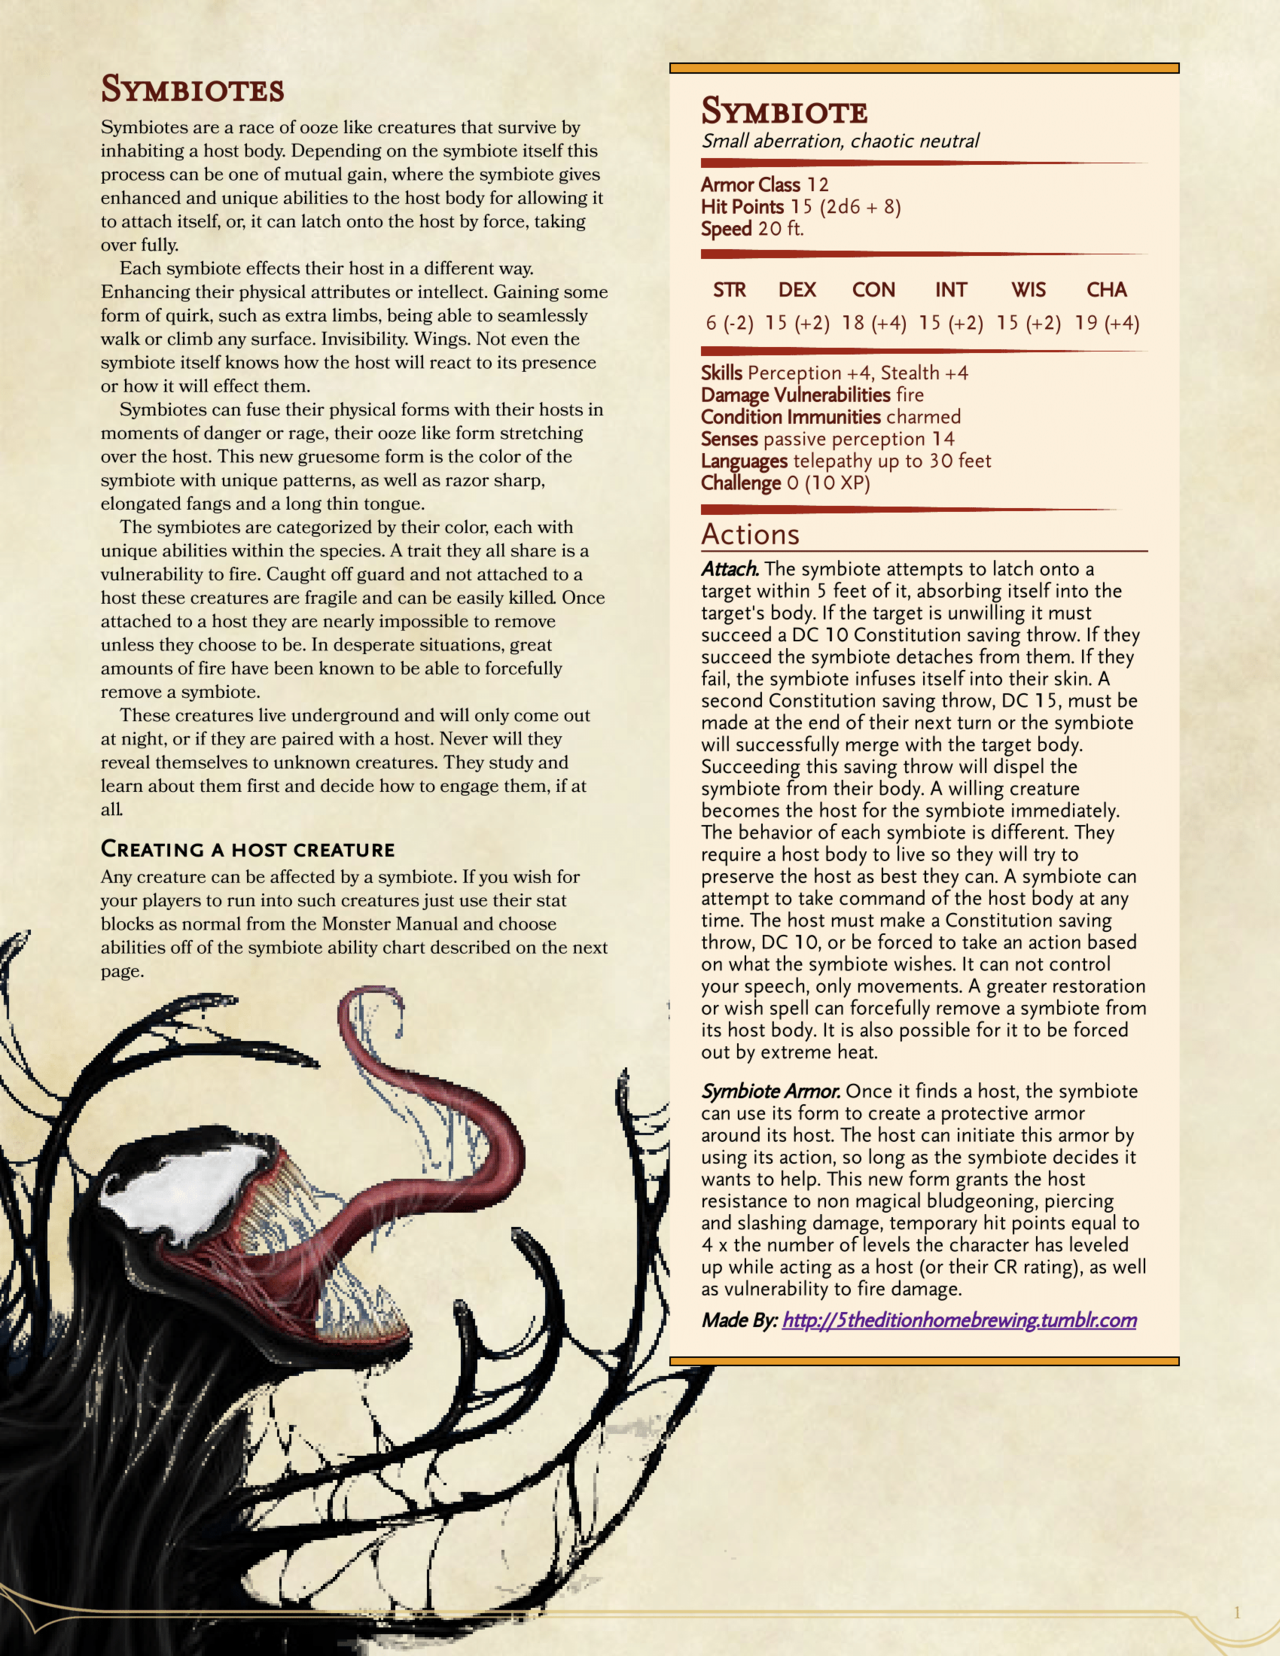 Pin By Jared Olson On D D In 2020 Dungeons Dragons Characters Dnd Dragons D D Dungeons Dragons